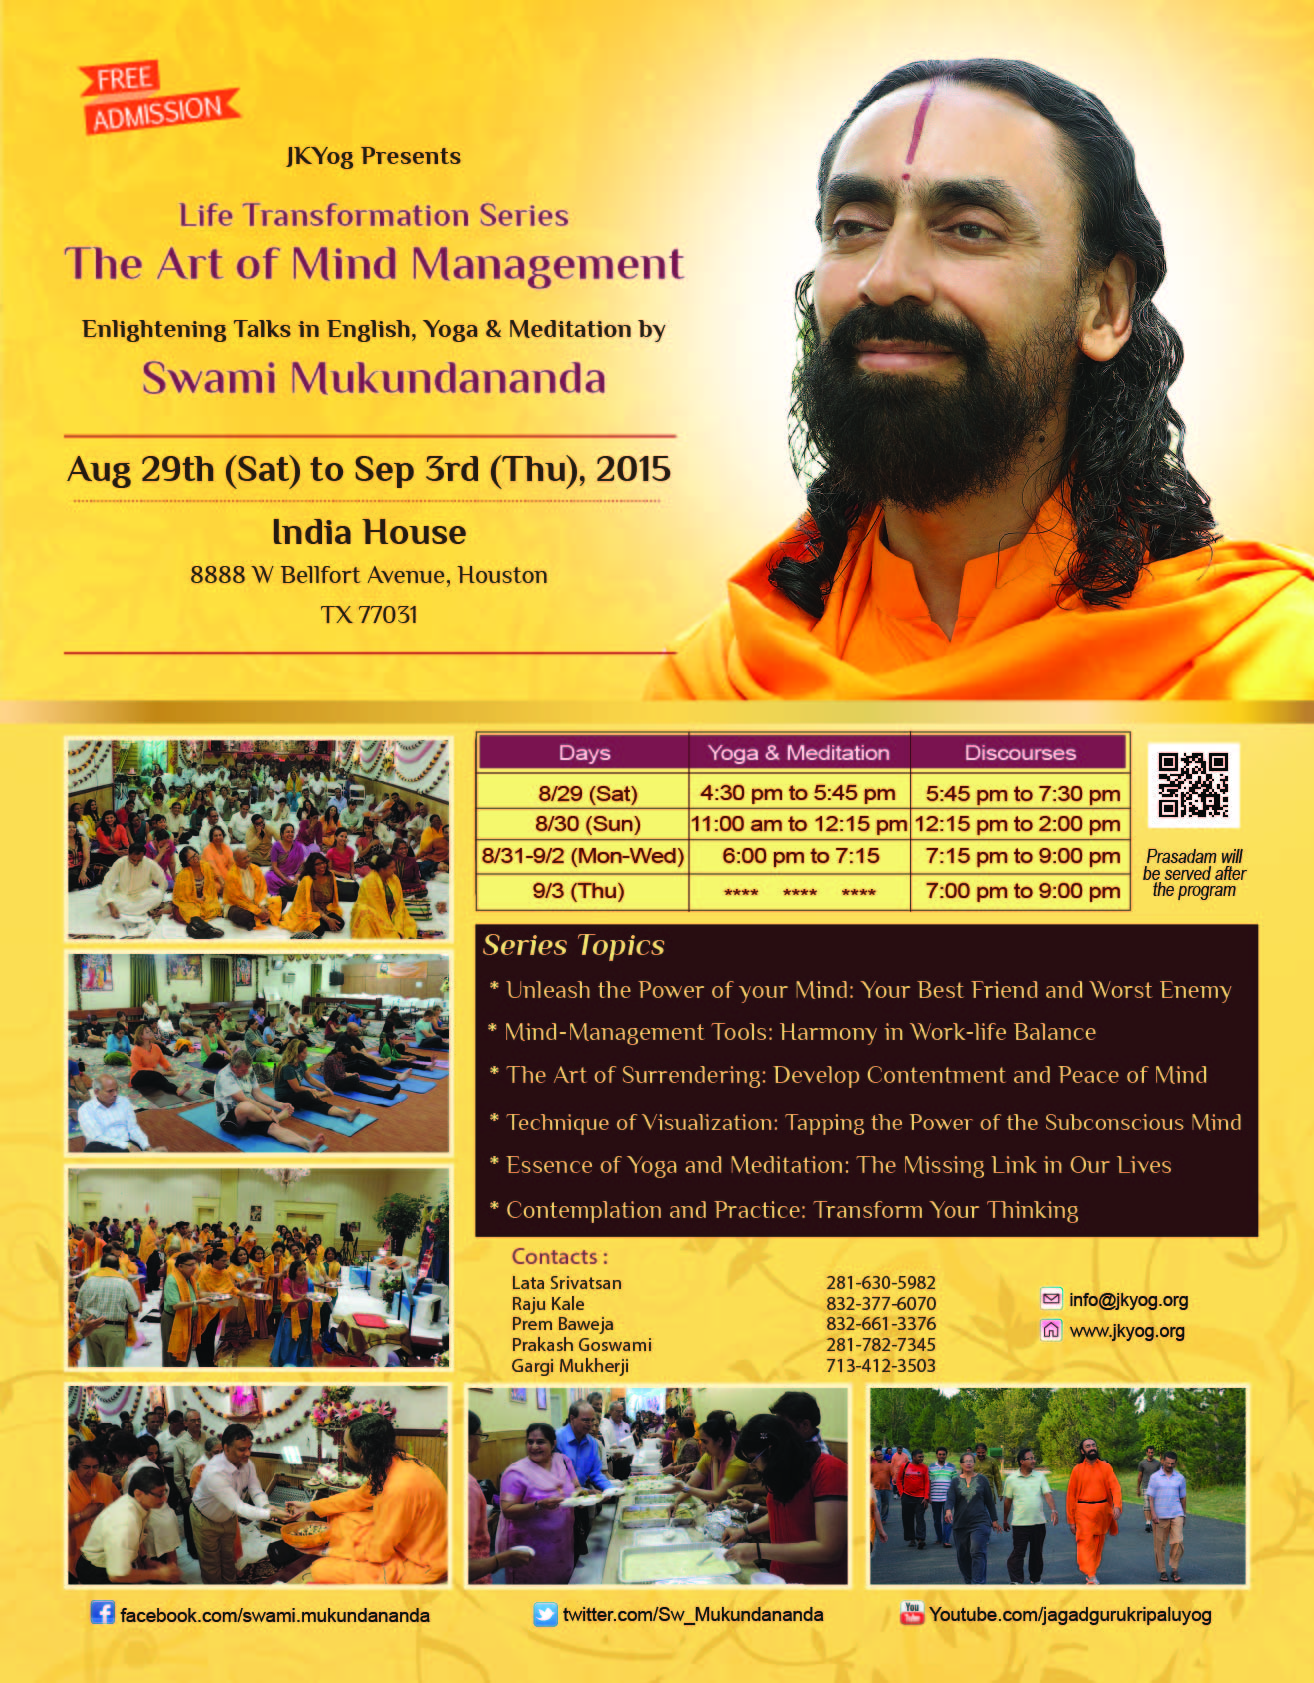 Life Transformation Series: The Art of Mind Management